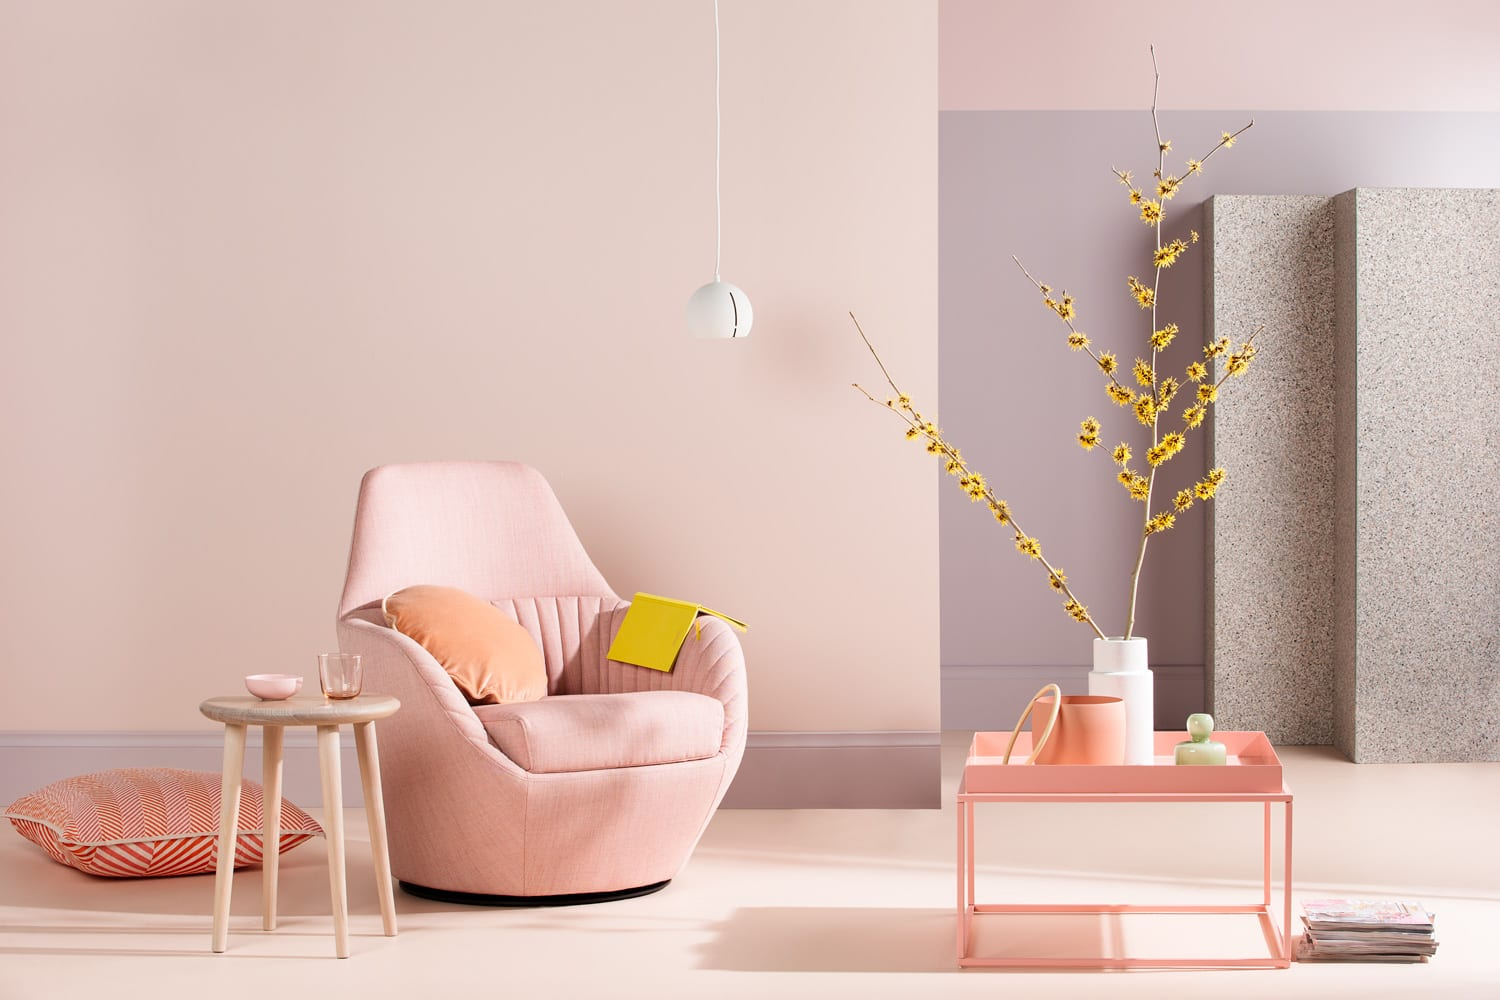 Haymes Paint Reveals 'Colour Conscience' to their Colour Library | Yellowtrace